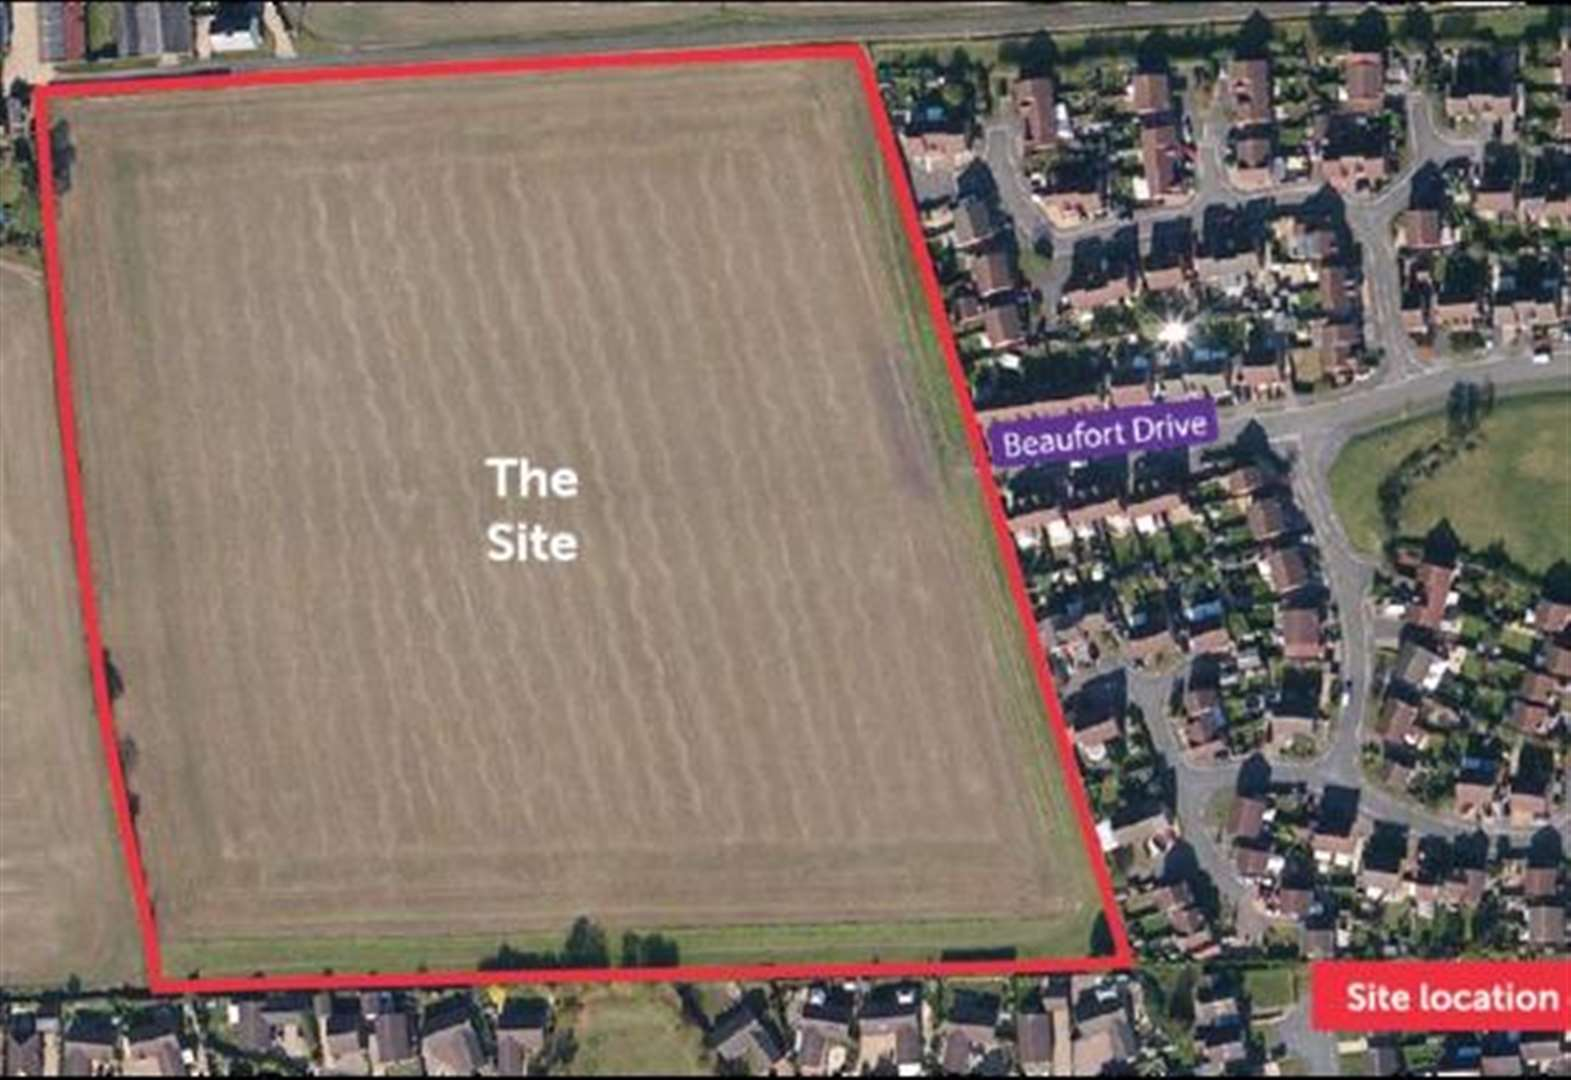 Have your say on town's 110-home development